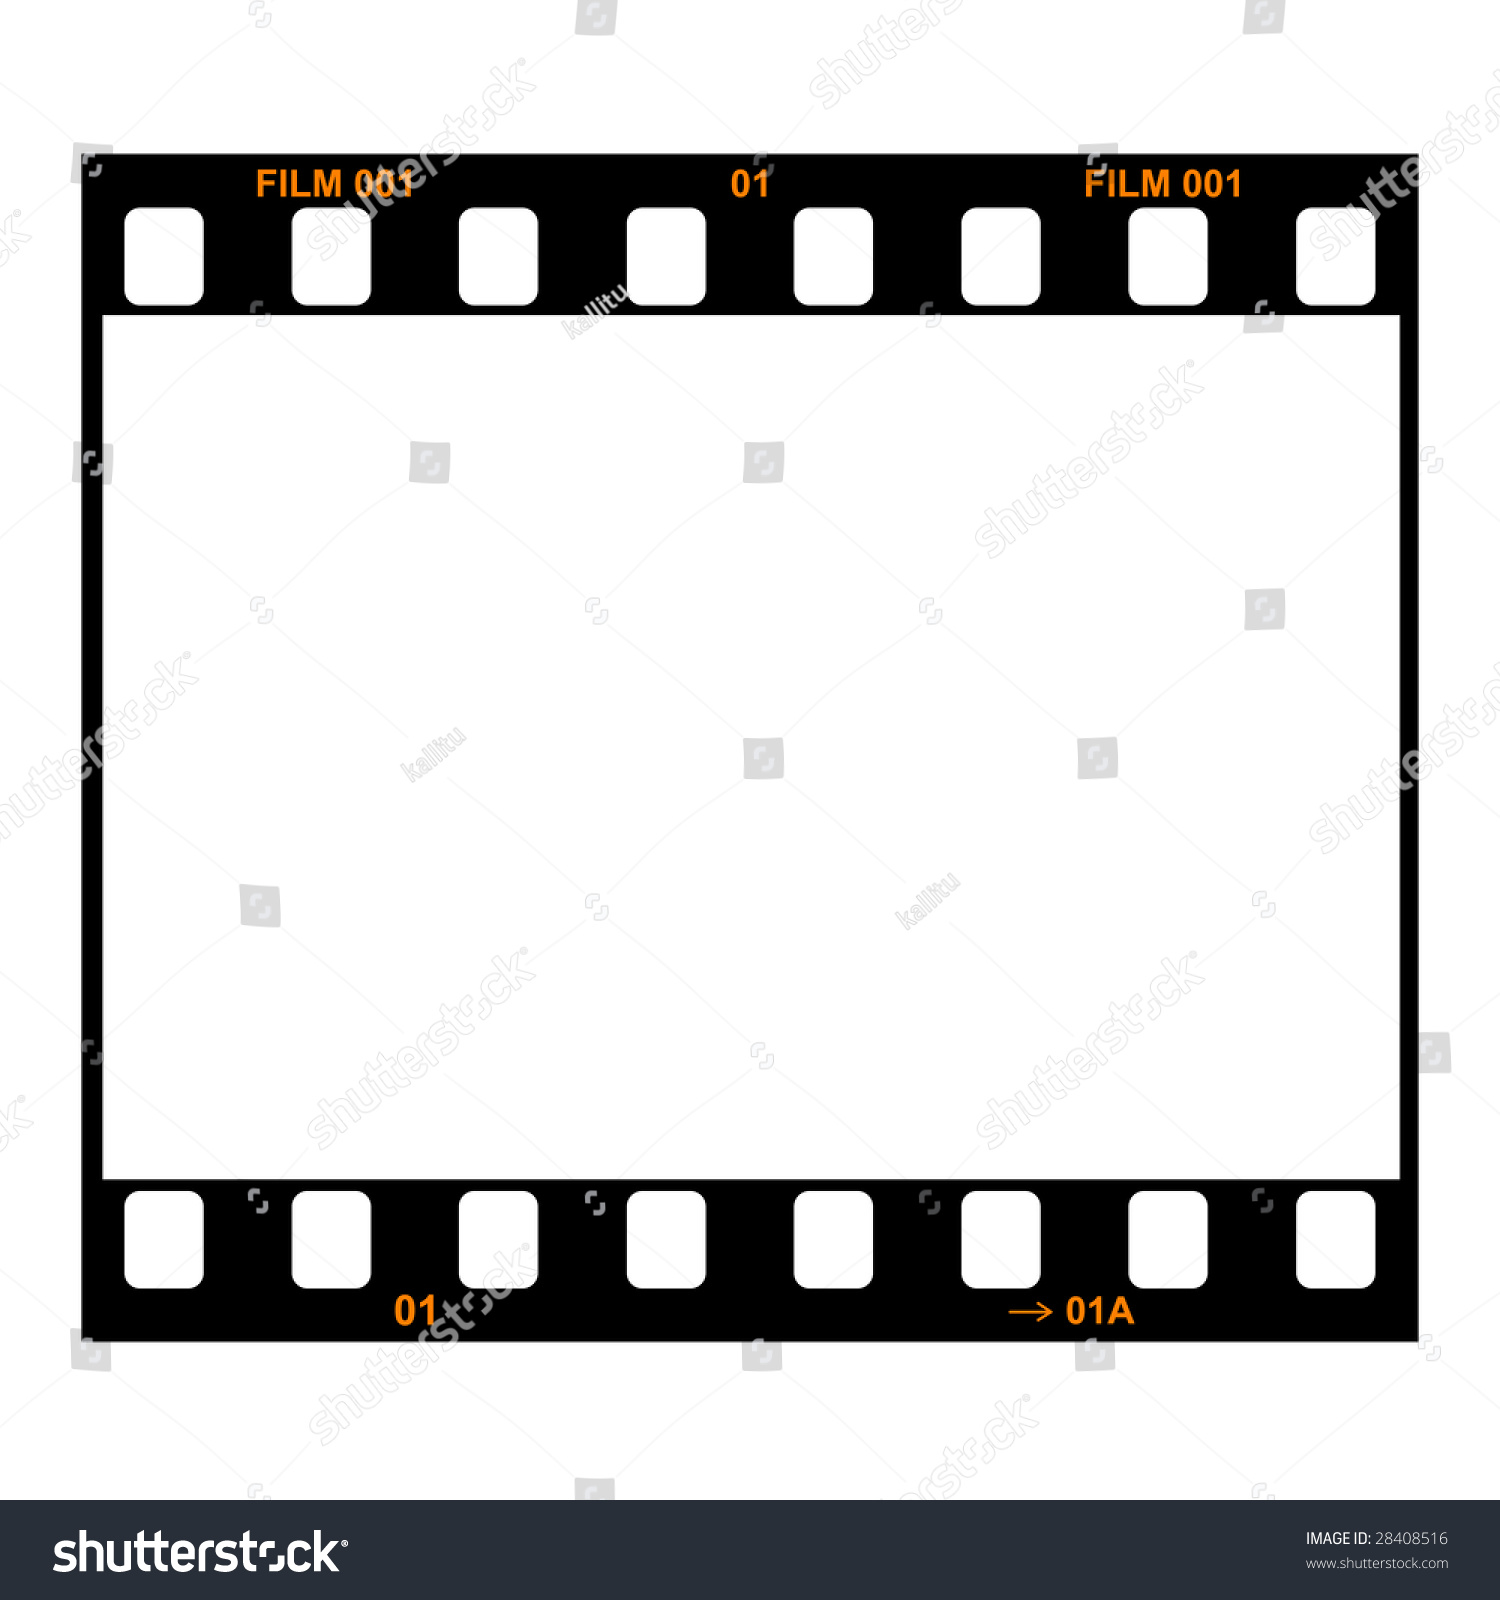 Film Strip Single Frame Stock Illustration 28408516 - Shutterstock